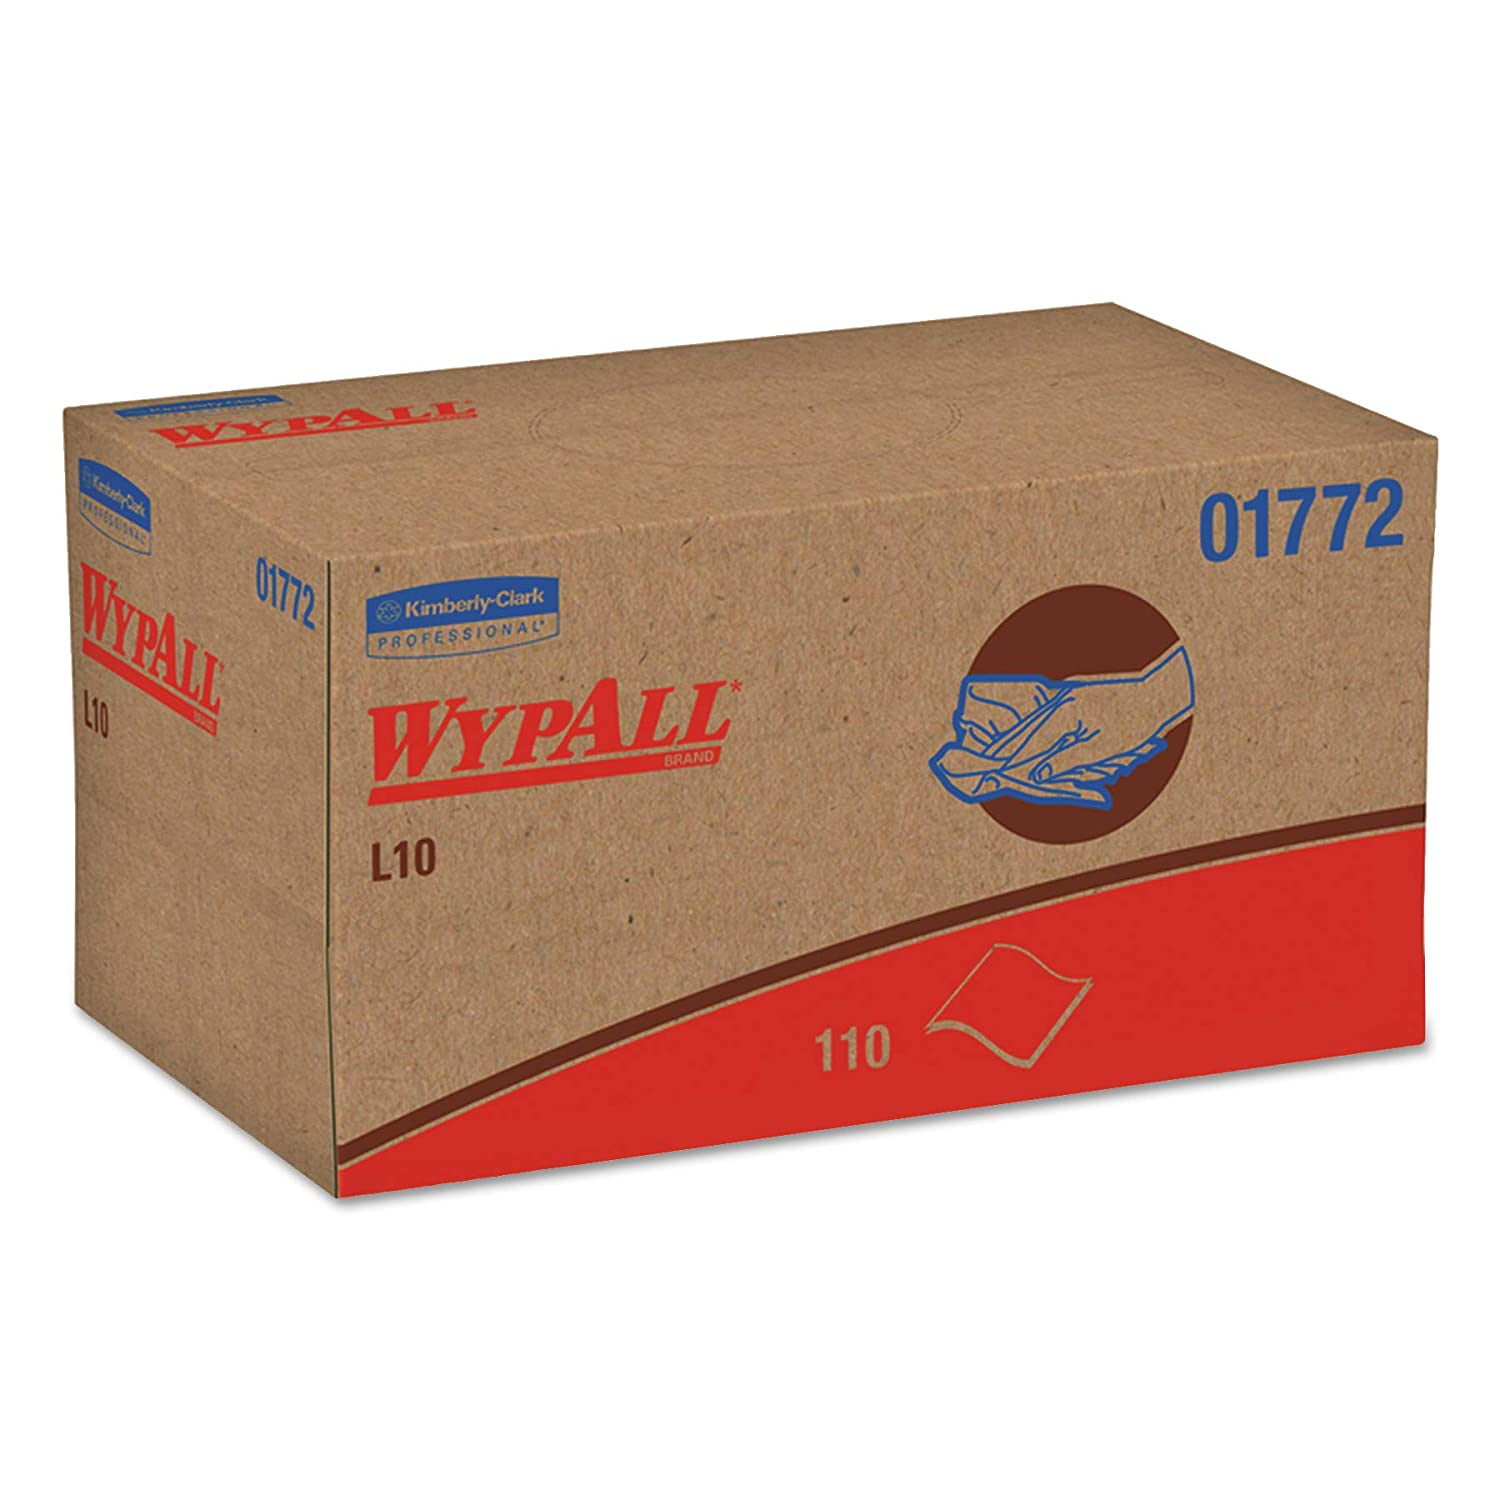 WypAll 01772 L10 SANI PREP Dairy Towels POP UP Box 1Ply 10 1 2x10 1 4 110 per Pack Case of 18 Packs